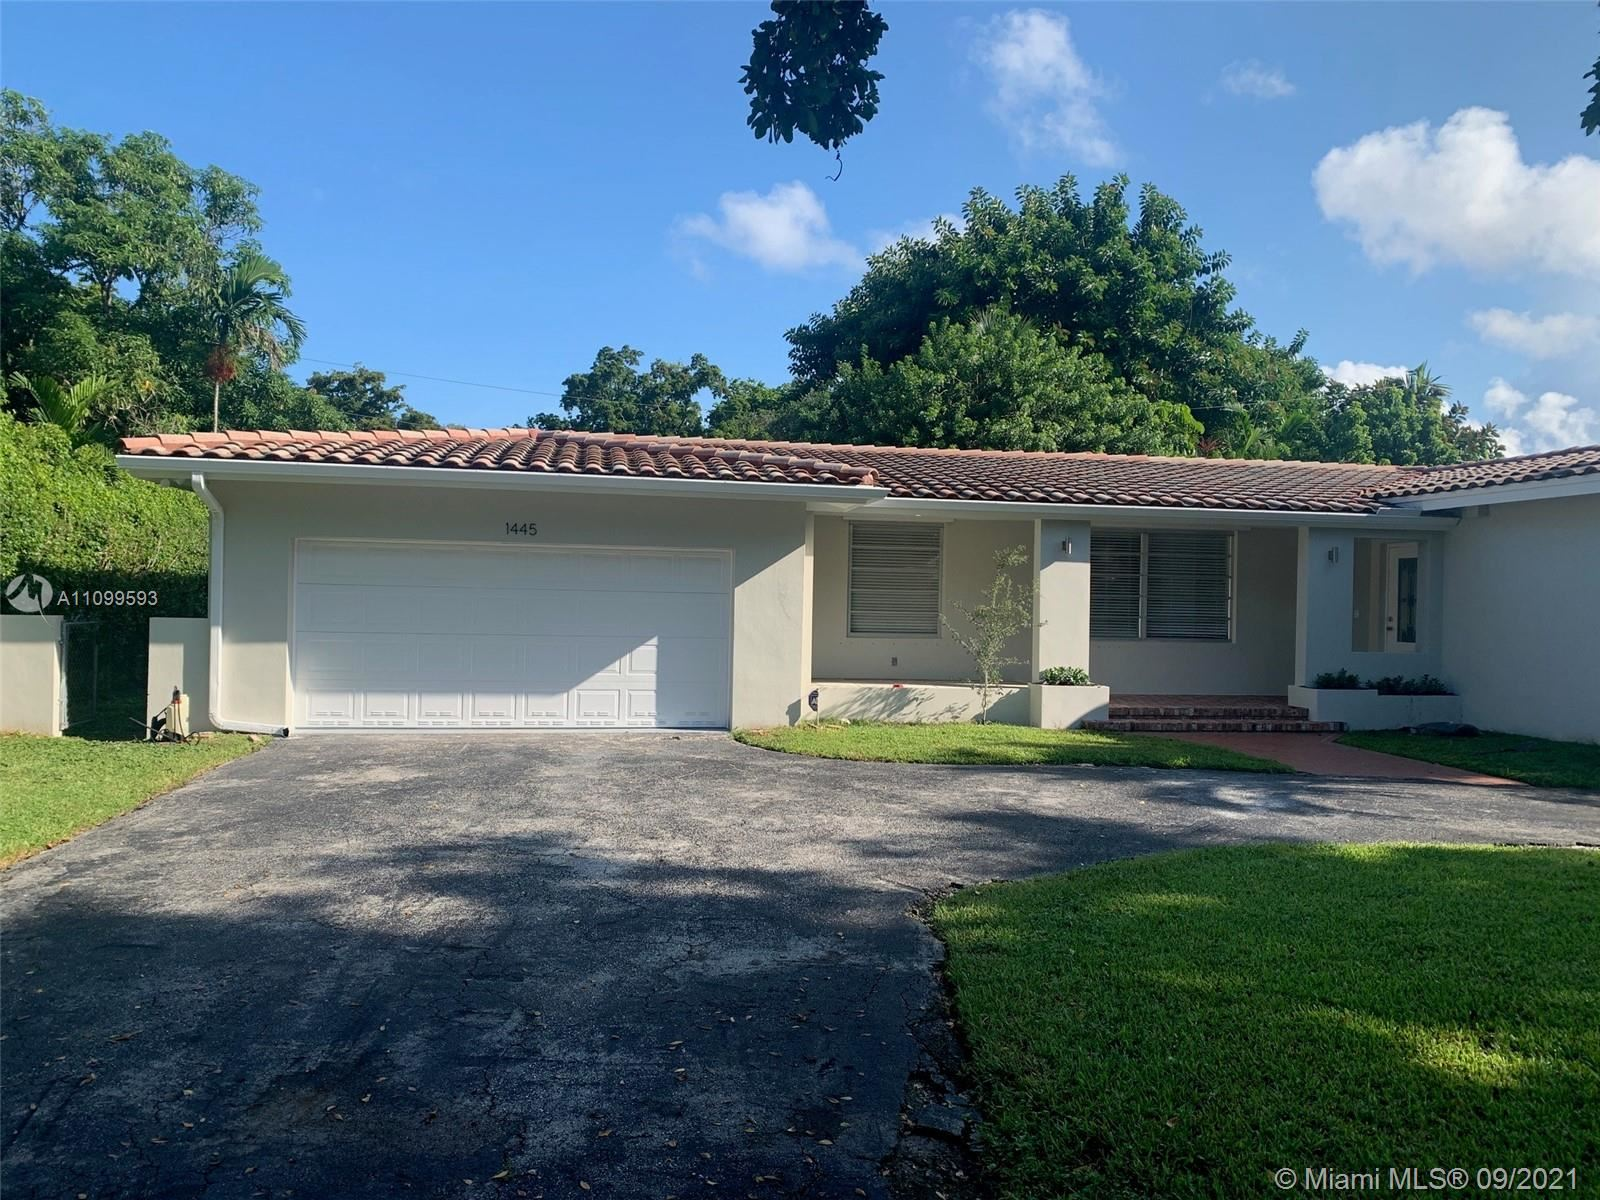 Photo of 1445 Trillo Ave, Coral Gables, FL 33146 (MLS # A11099593)